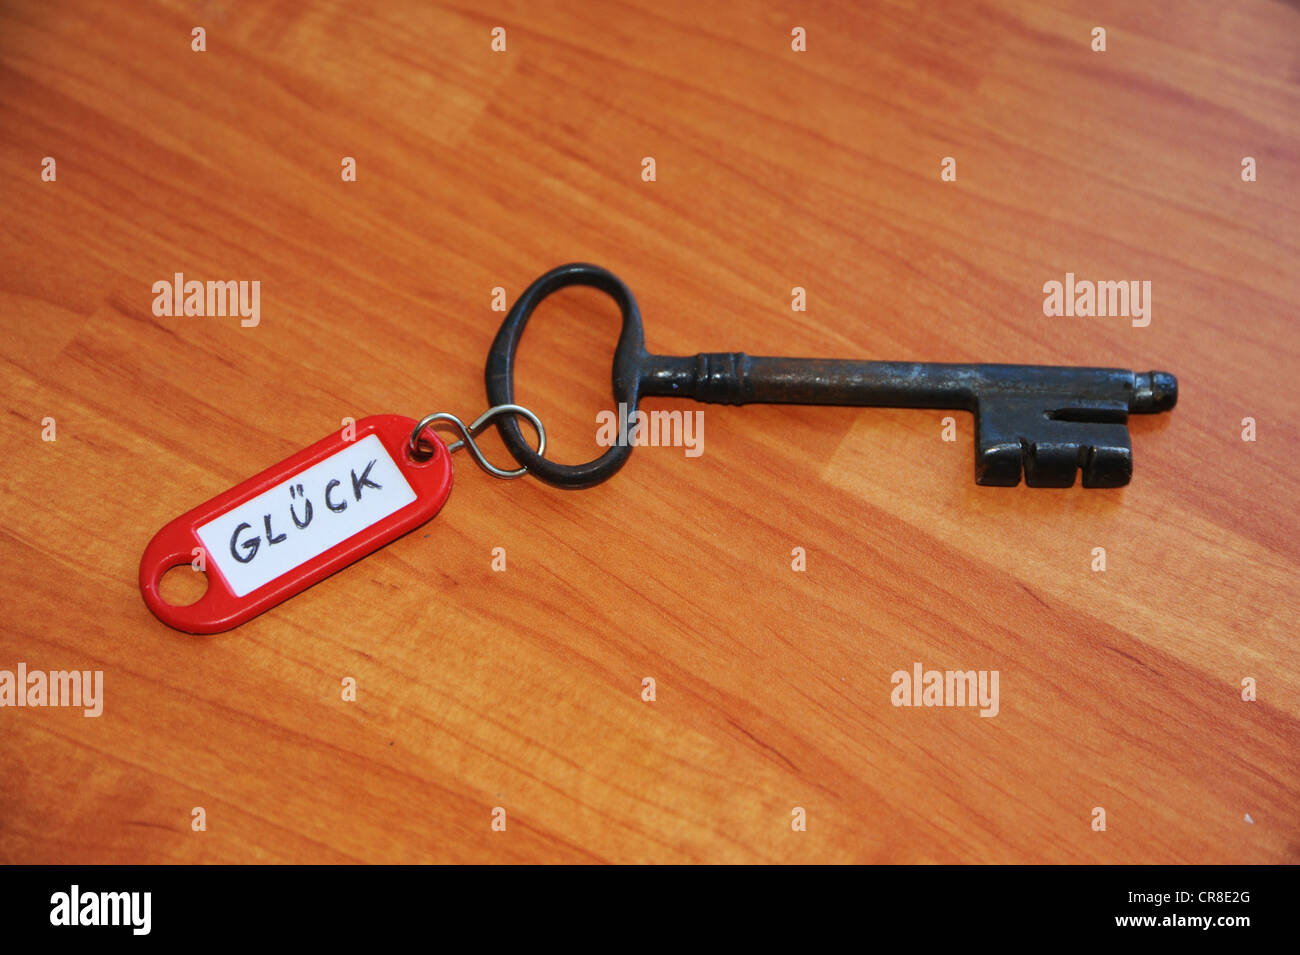 Key ring with the sign 'Glueck', German for 'luck' symbolic image for 'key to happiness' - Stock Image